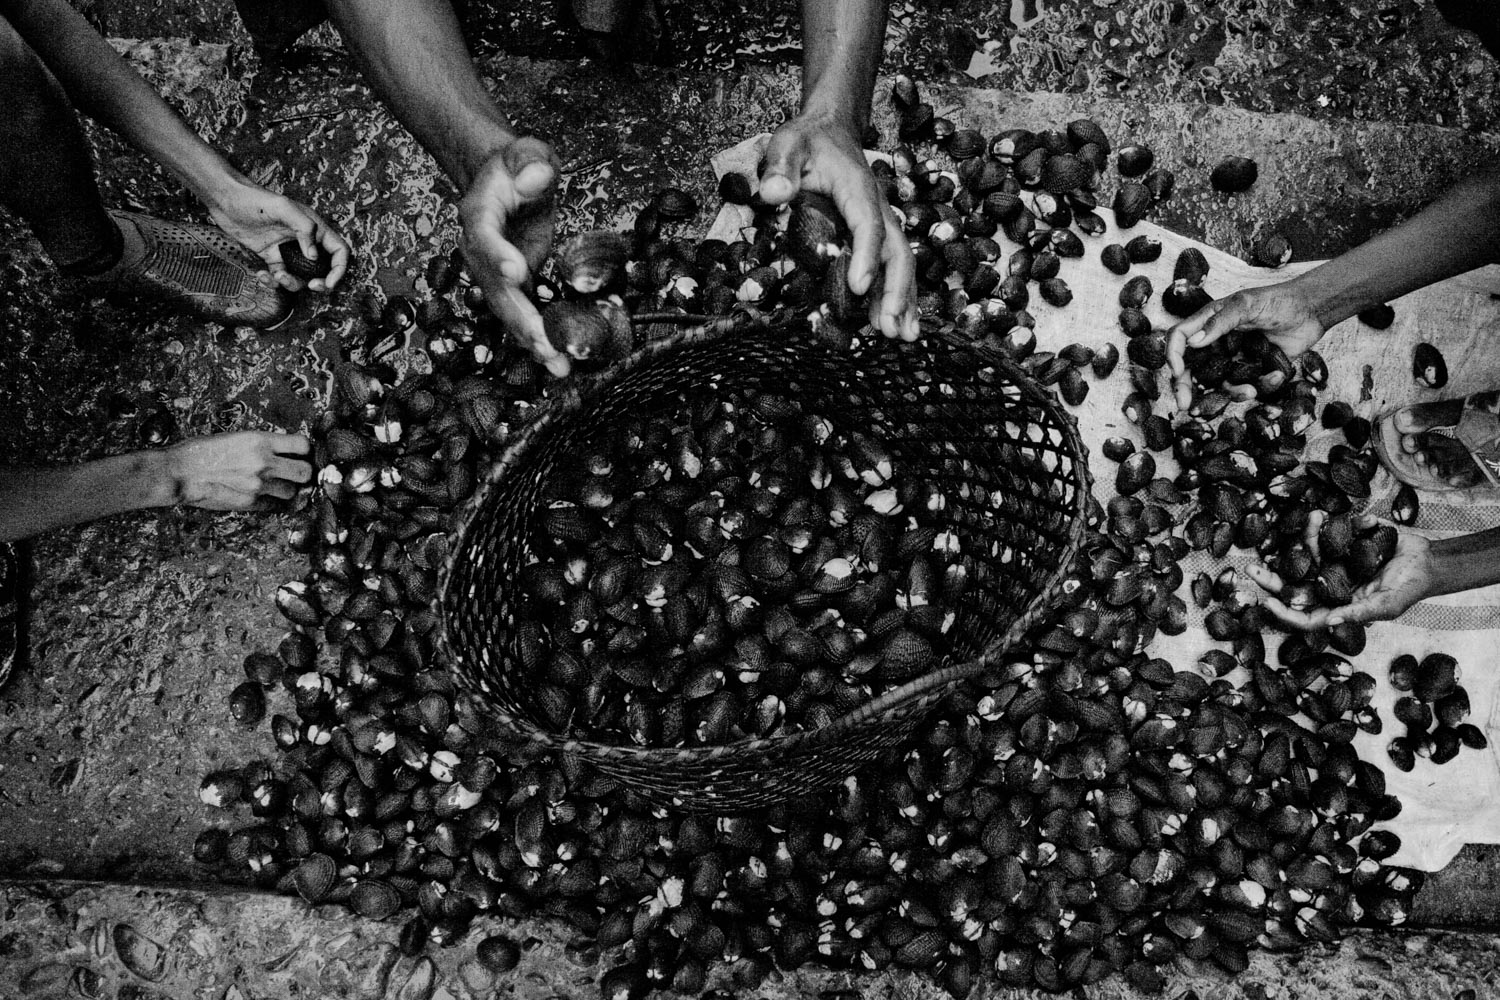 Even though shells are a culinary delicacy in Ecuador, shell pickers are only paid 8 cents of a dollar per shell. On average, pickers will find 100 shells in a day´s work. San Lorenzo, Ecuador. 2010